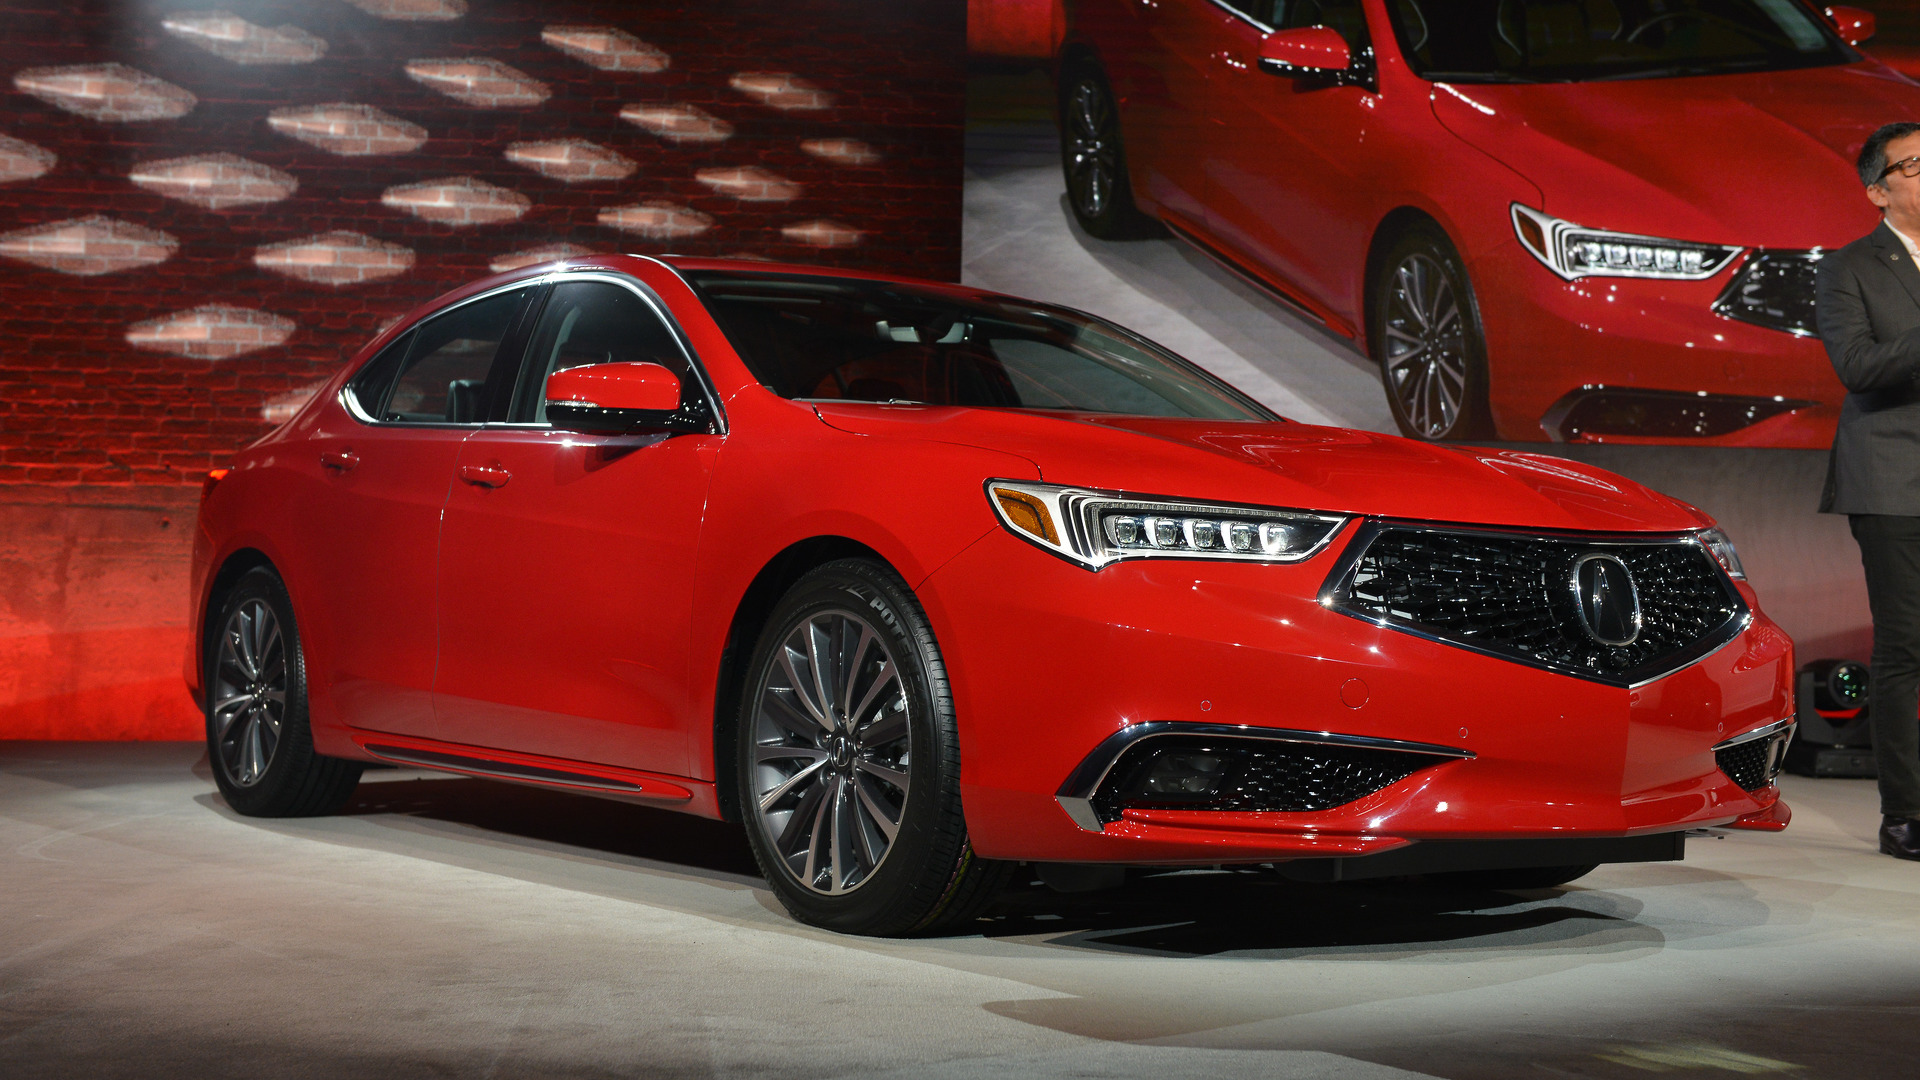 2018 Acura Tlx Gets An Aggressive New Look Loads Of Added Tech